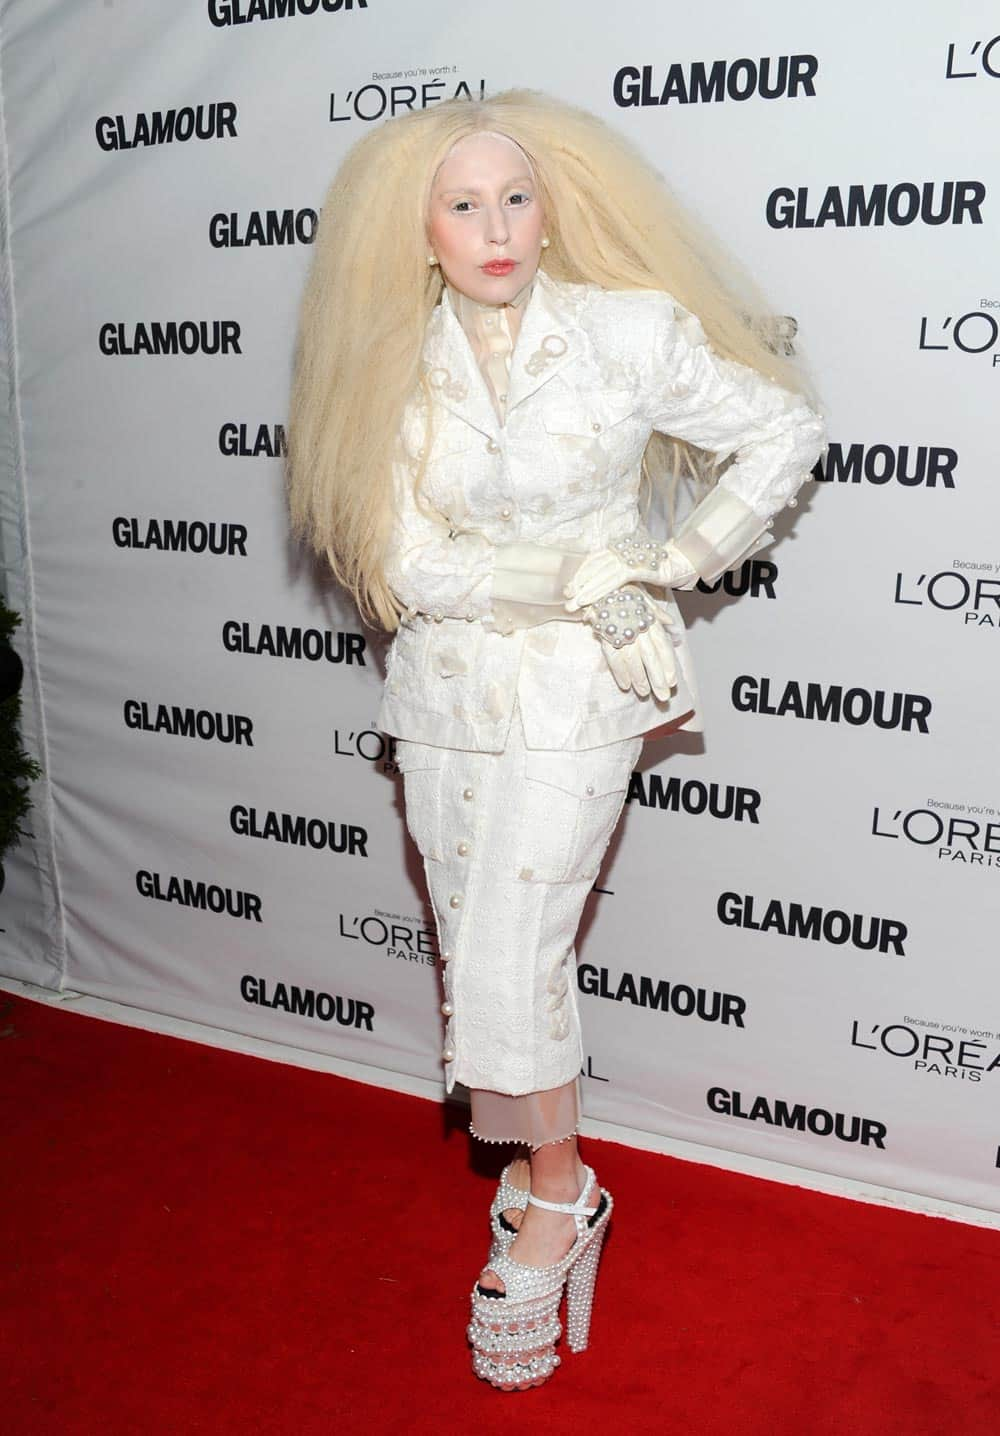 Honoree Lady Gaga attends the 23rd Annual Glamour Women of the Year Awards hosted by Glamour Magazine at Carnegie Hall, in New York.